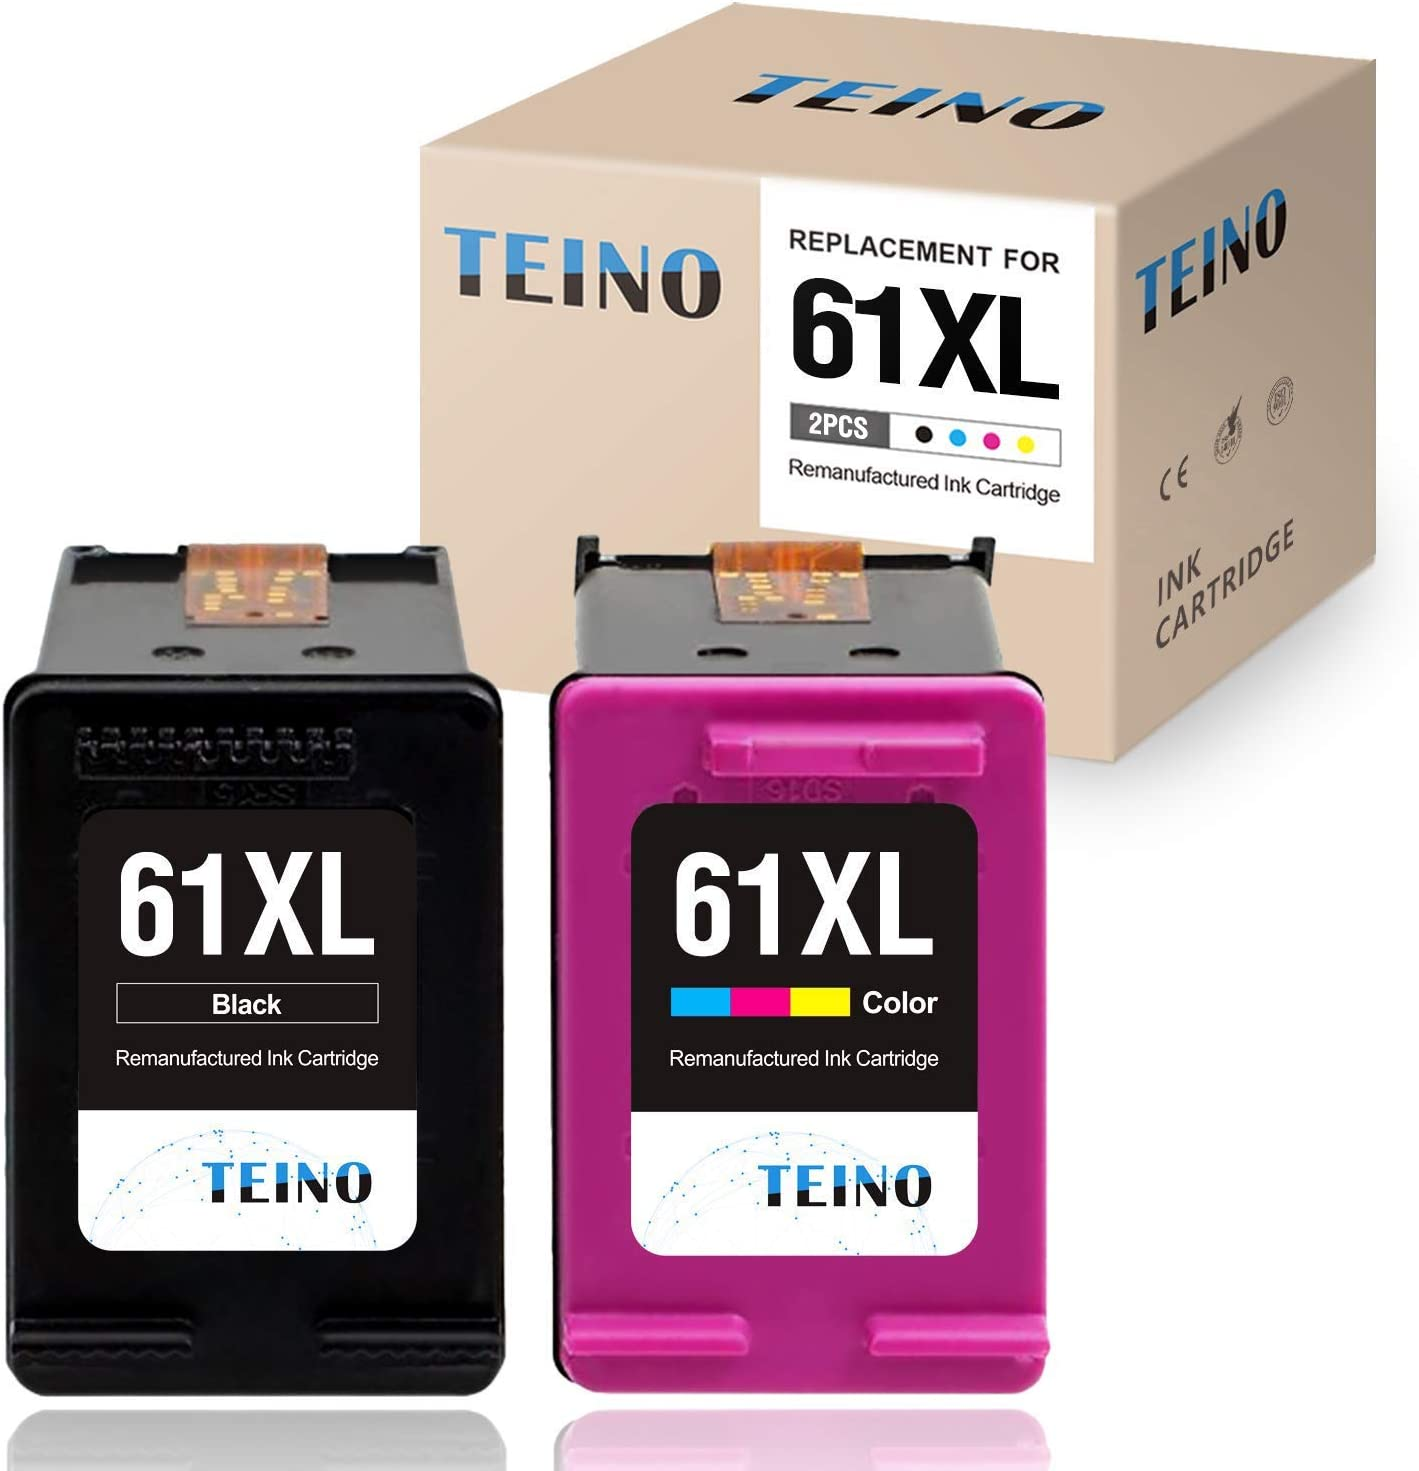 TEINO Remanufactured Ink Cartridge Replacement for HP 61XL 61 XL use with HP Envy 5530 4500 4502 OfficeJet 4630 4635 DeskJet 2540 1010 3050A 2542 2549 3510 2548 2541 (Black, Tri-Color, 2-Pack)